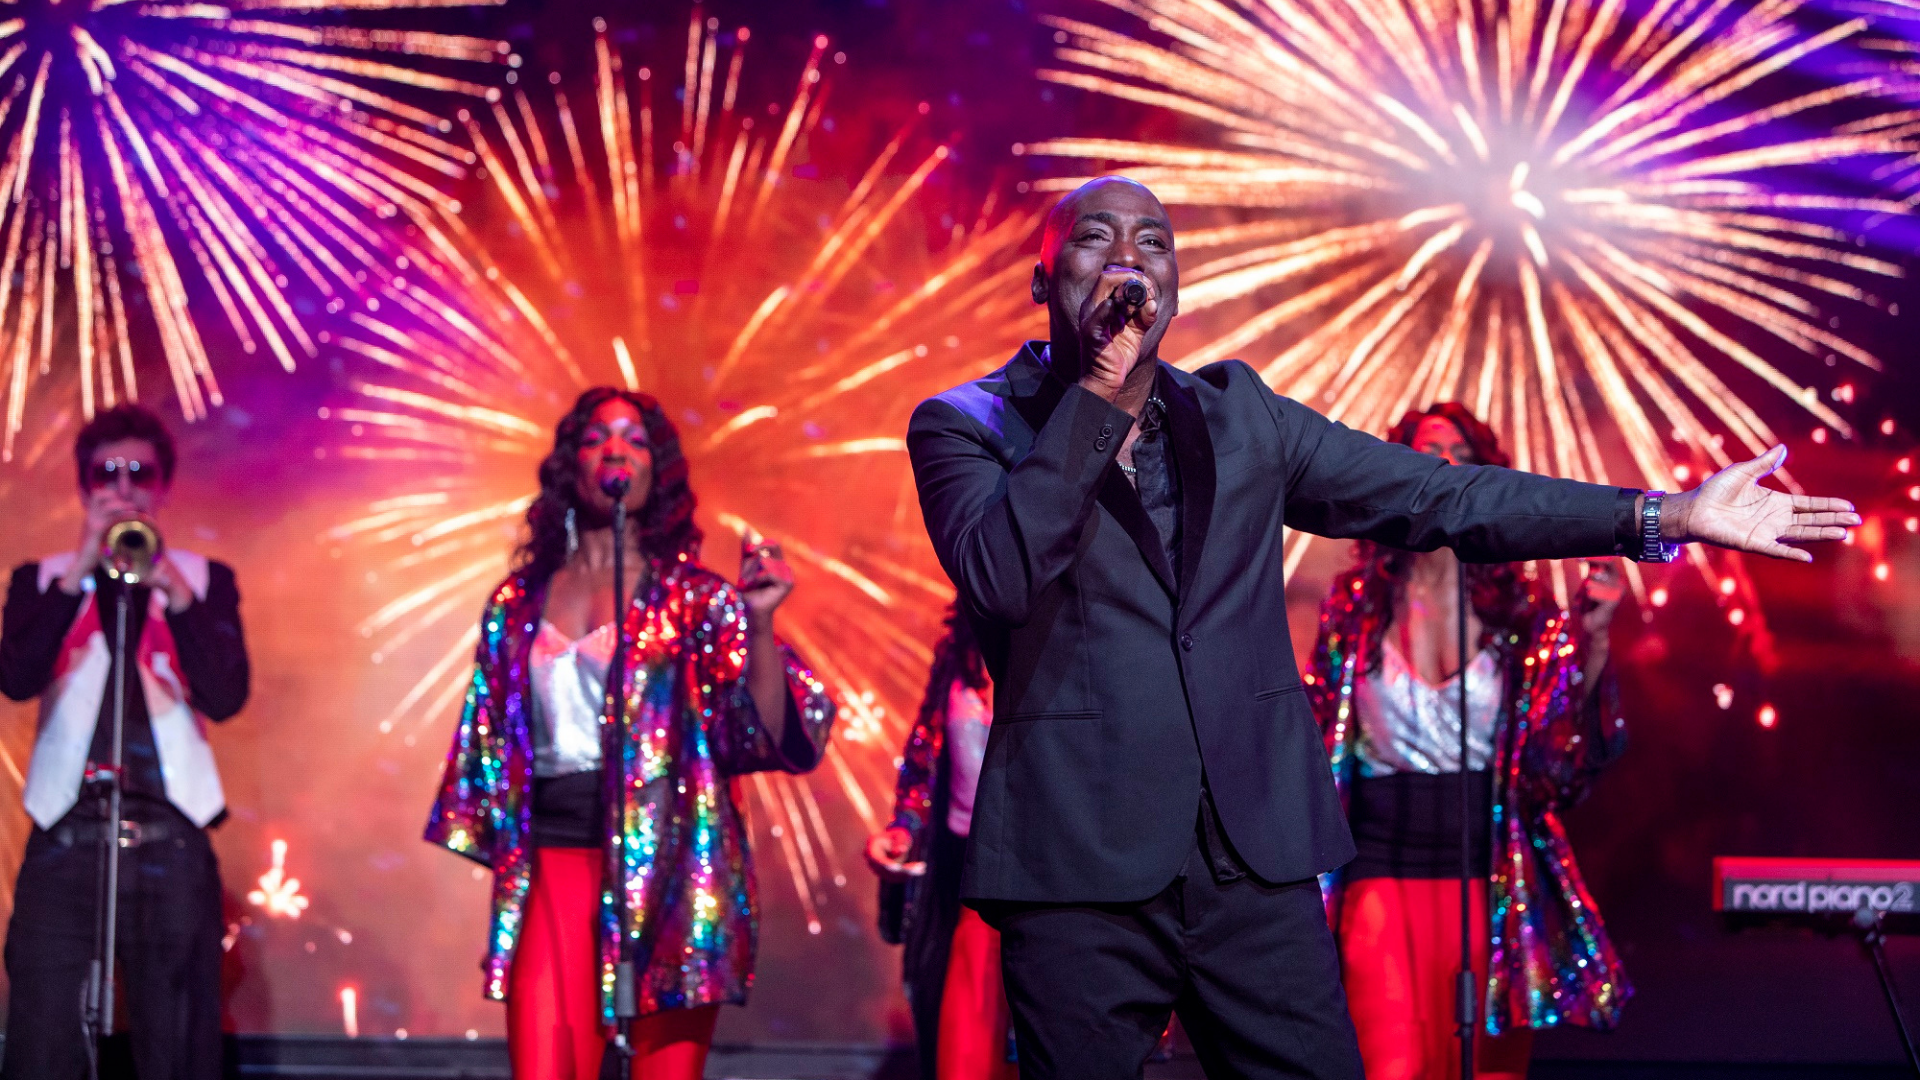 Lost in Music production shot: a male singer wearing a suit sings animatedly in the foreground, while 3 female backing singers dance in the background